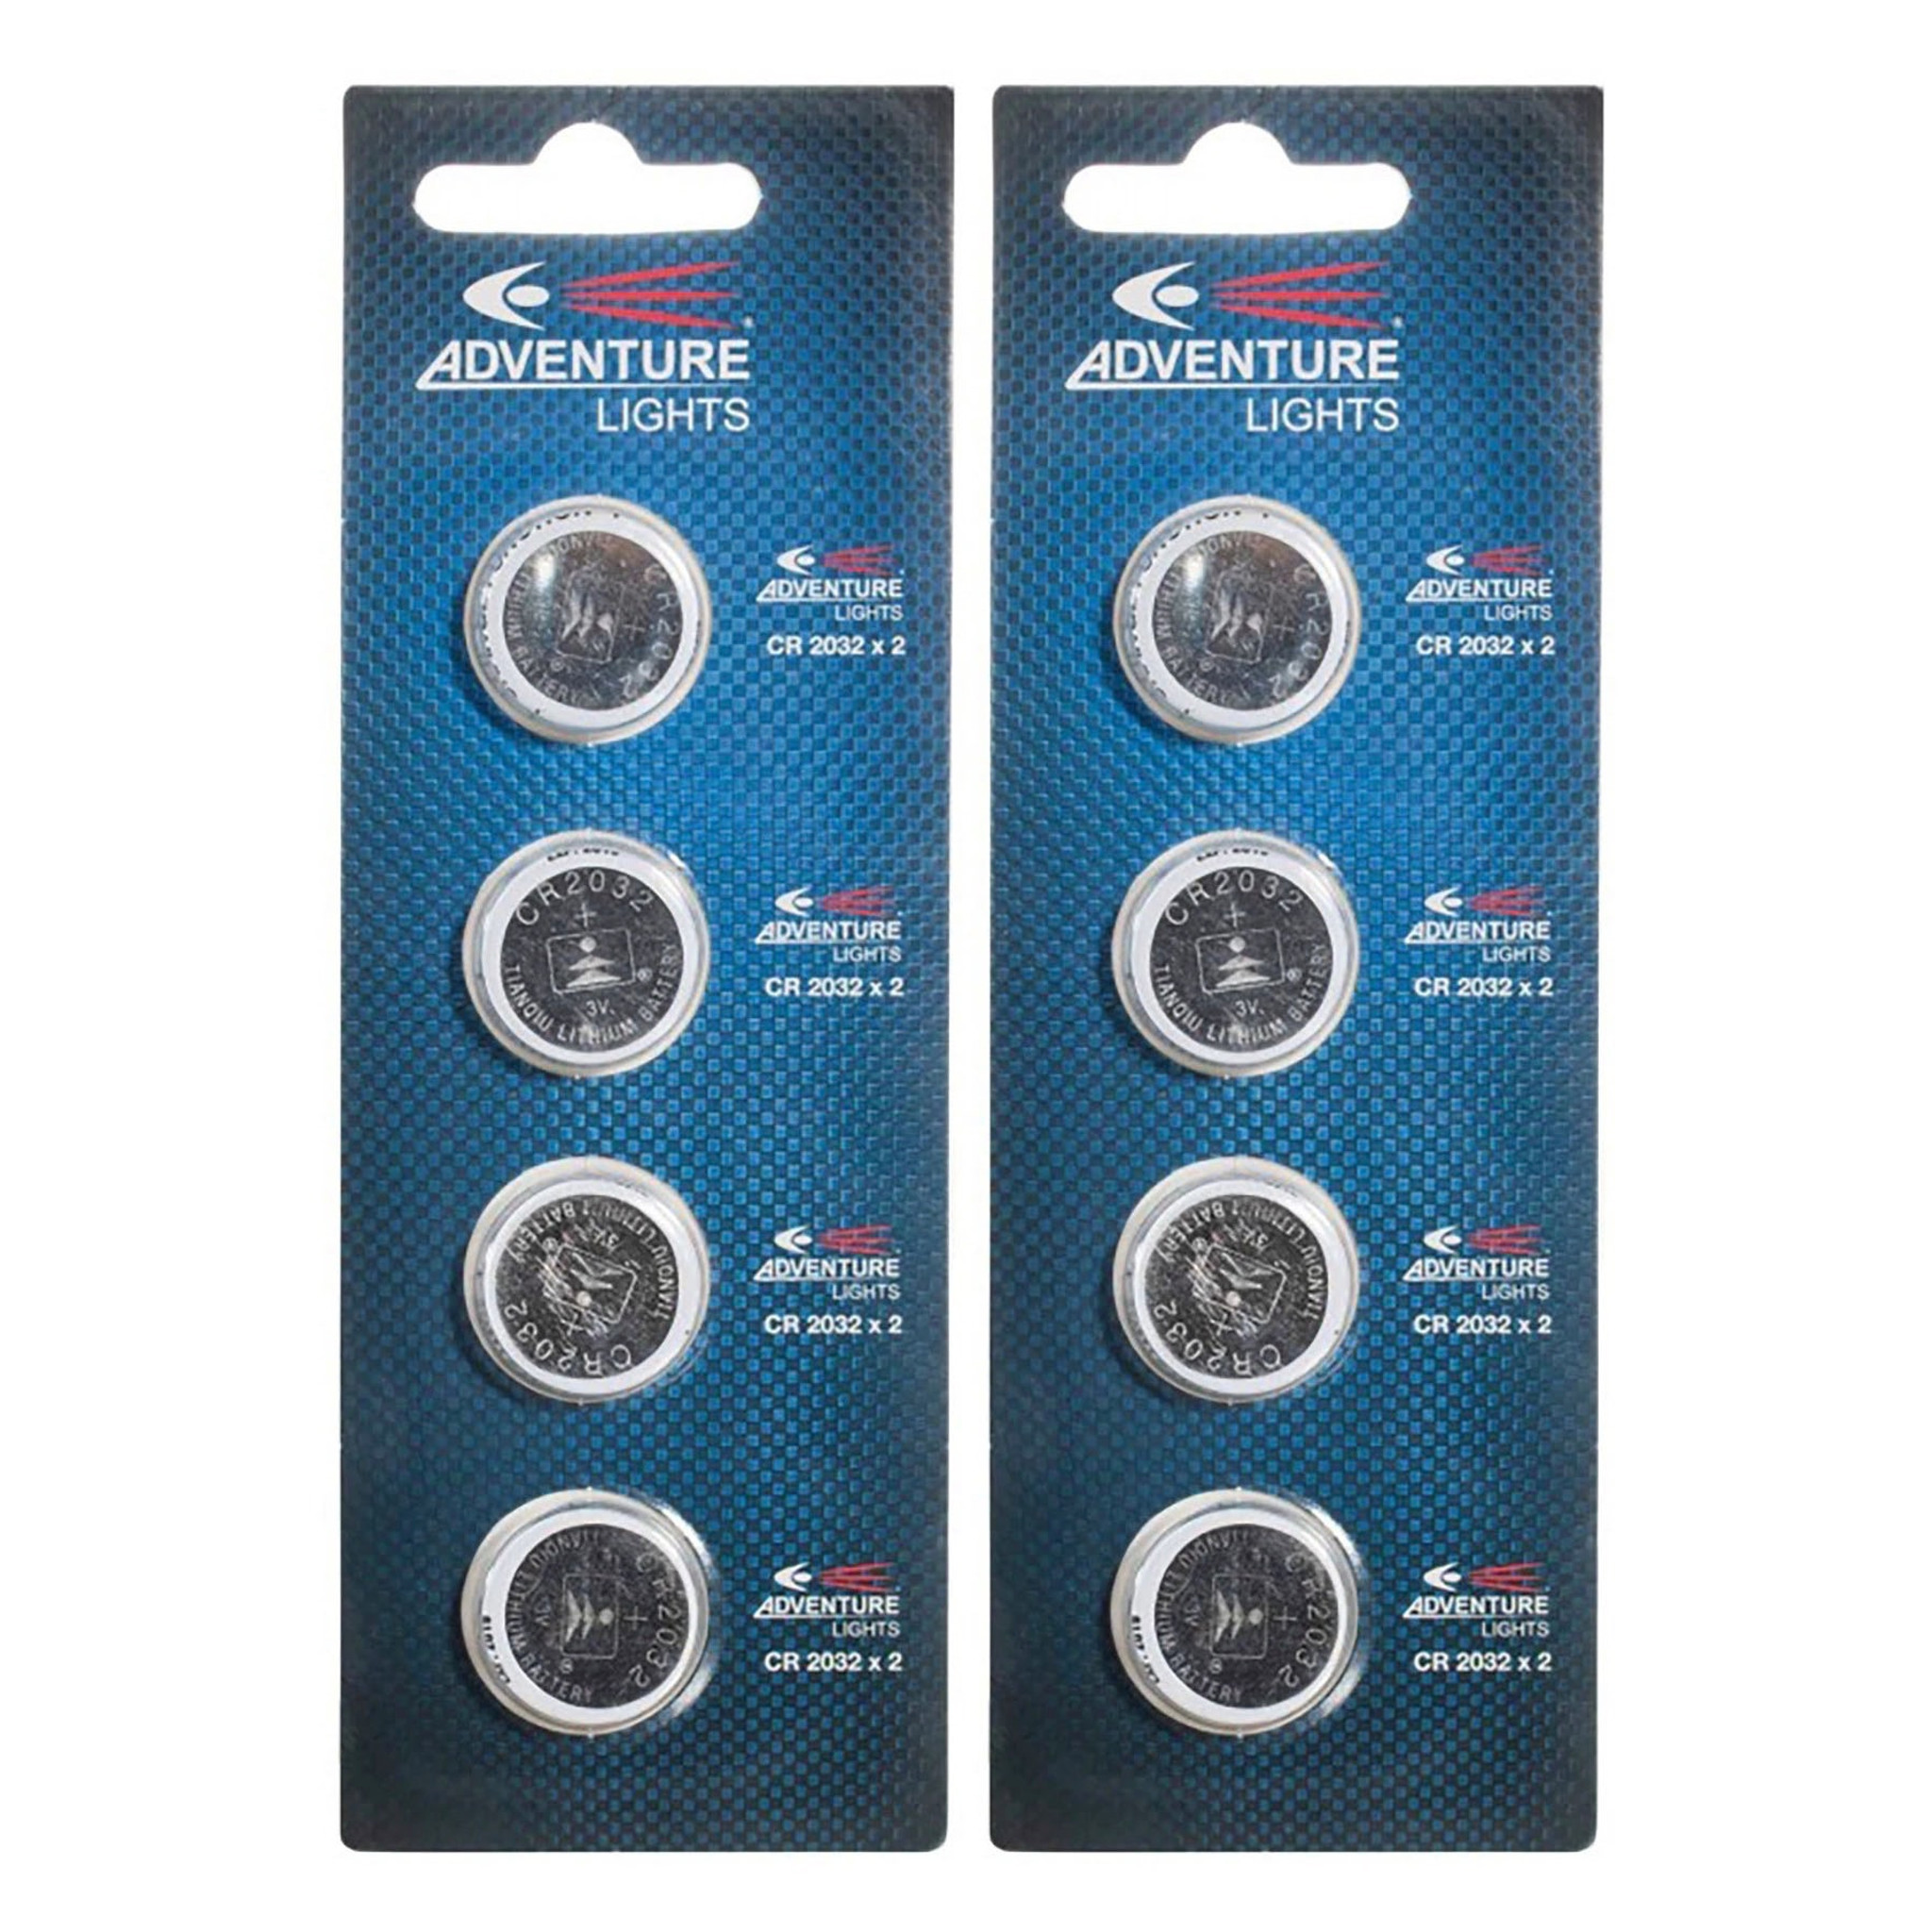 Pack For Guardian /& Trident Adventure Lights CR-2032 Lithium Cell Batteries 4